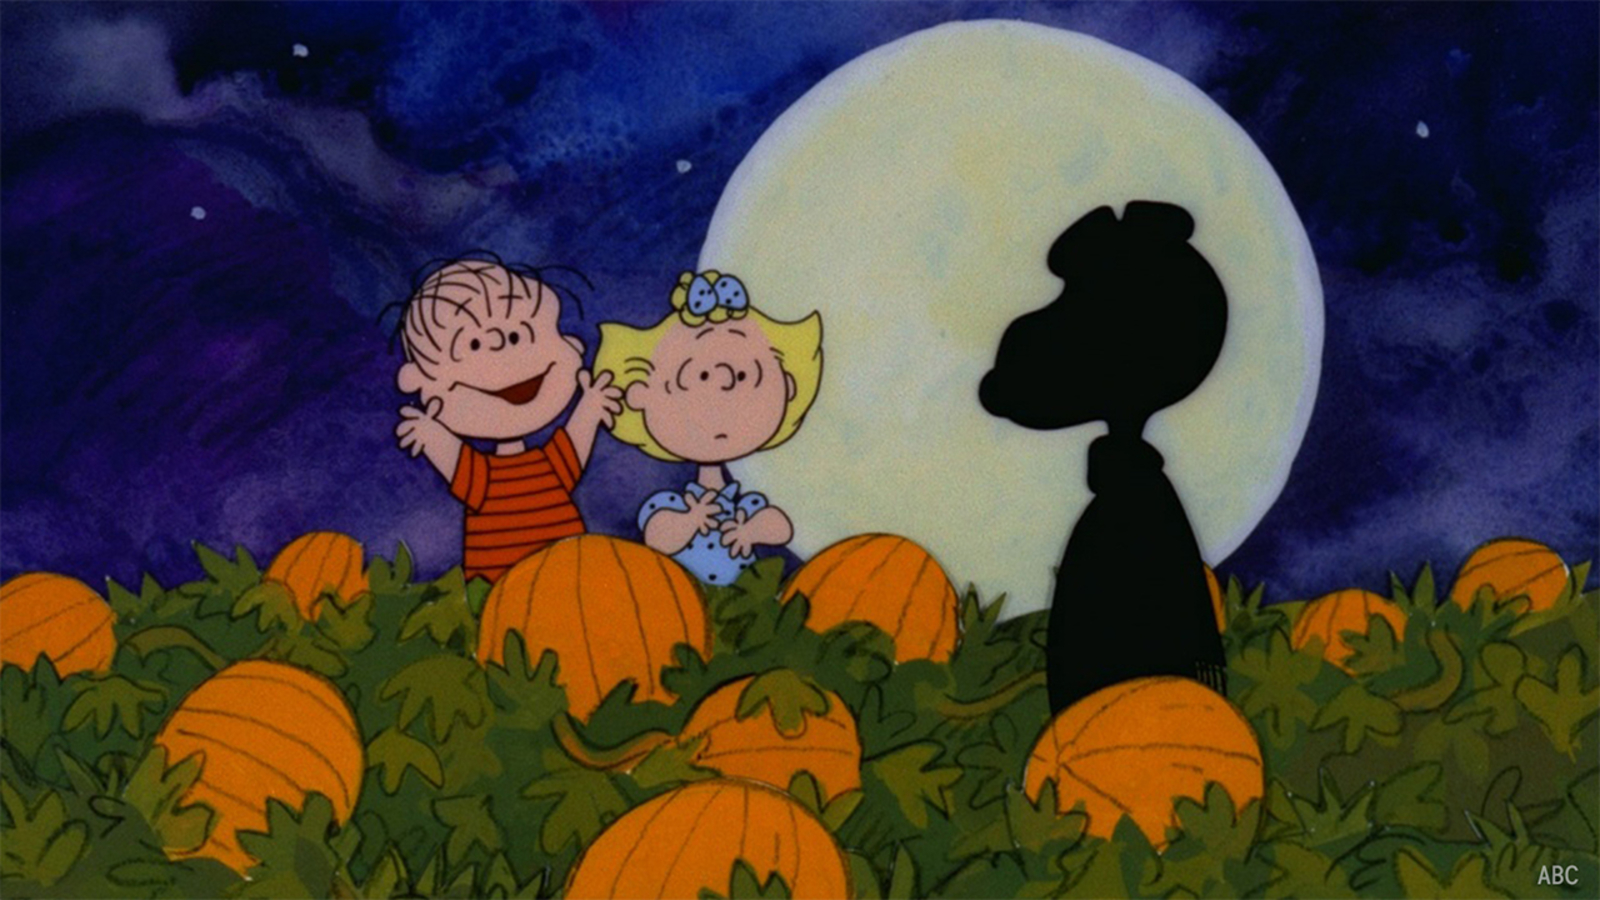 Halloween Programs On Abc 2020 Charlie Brown Halloween special 'It's the Great Pumpkin, Charlie